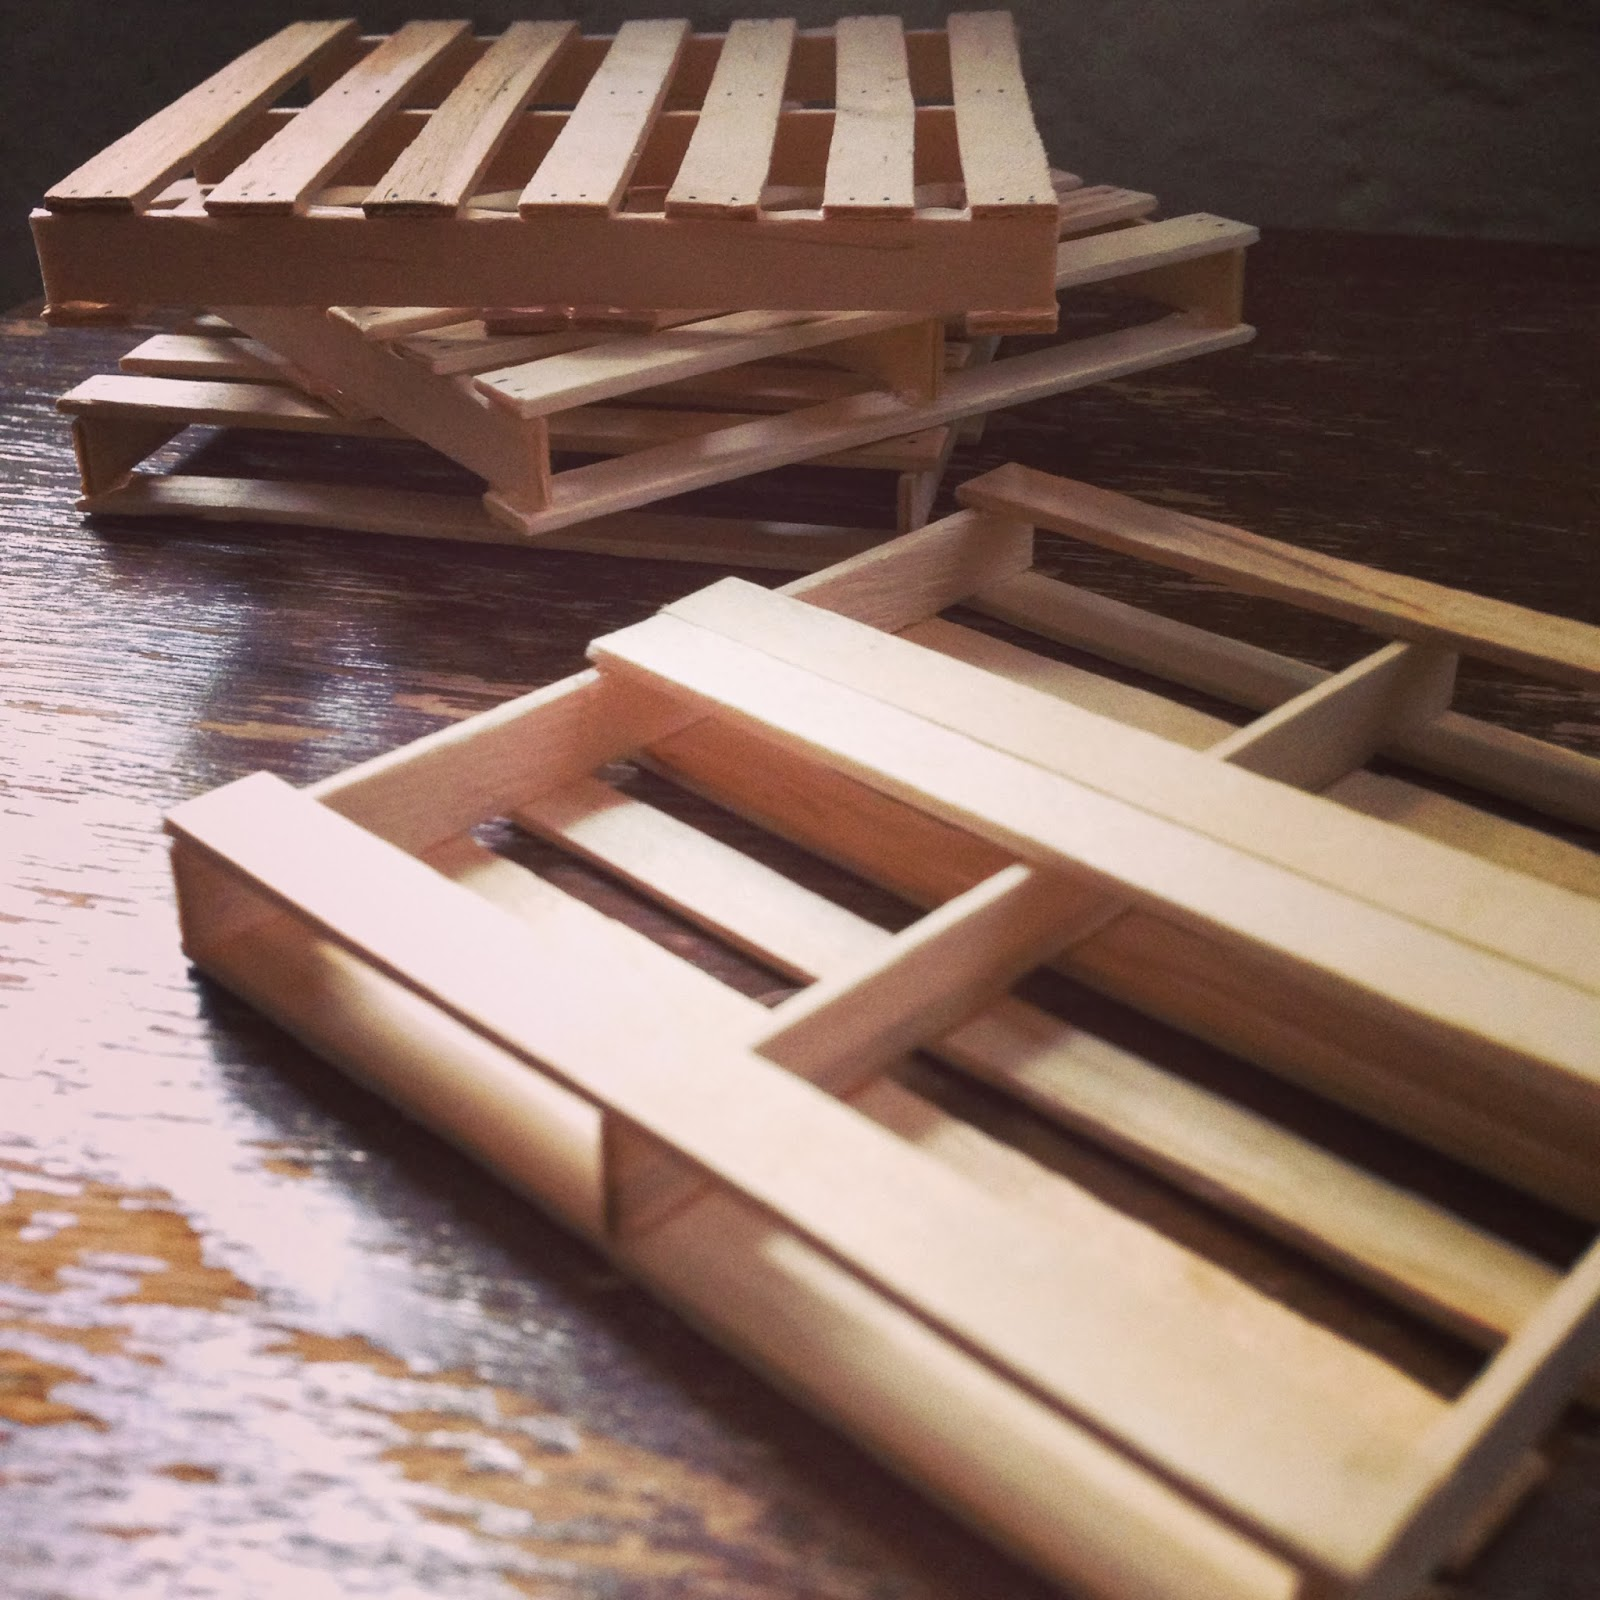 Crafty Lumberjacks: Popsicle Stick Pallet Coasters